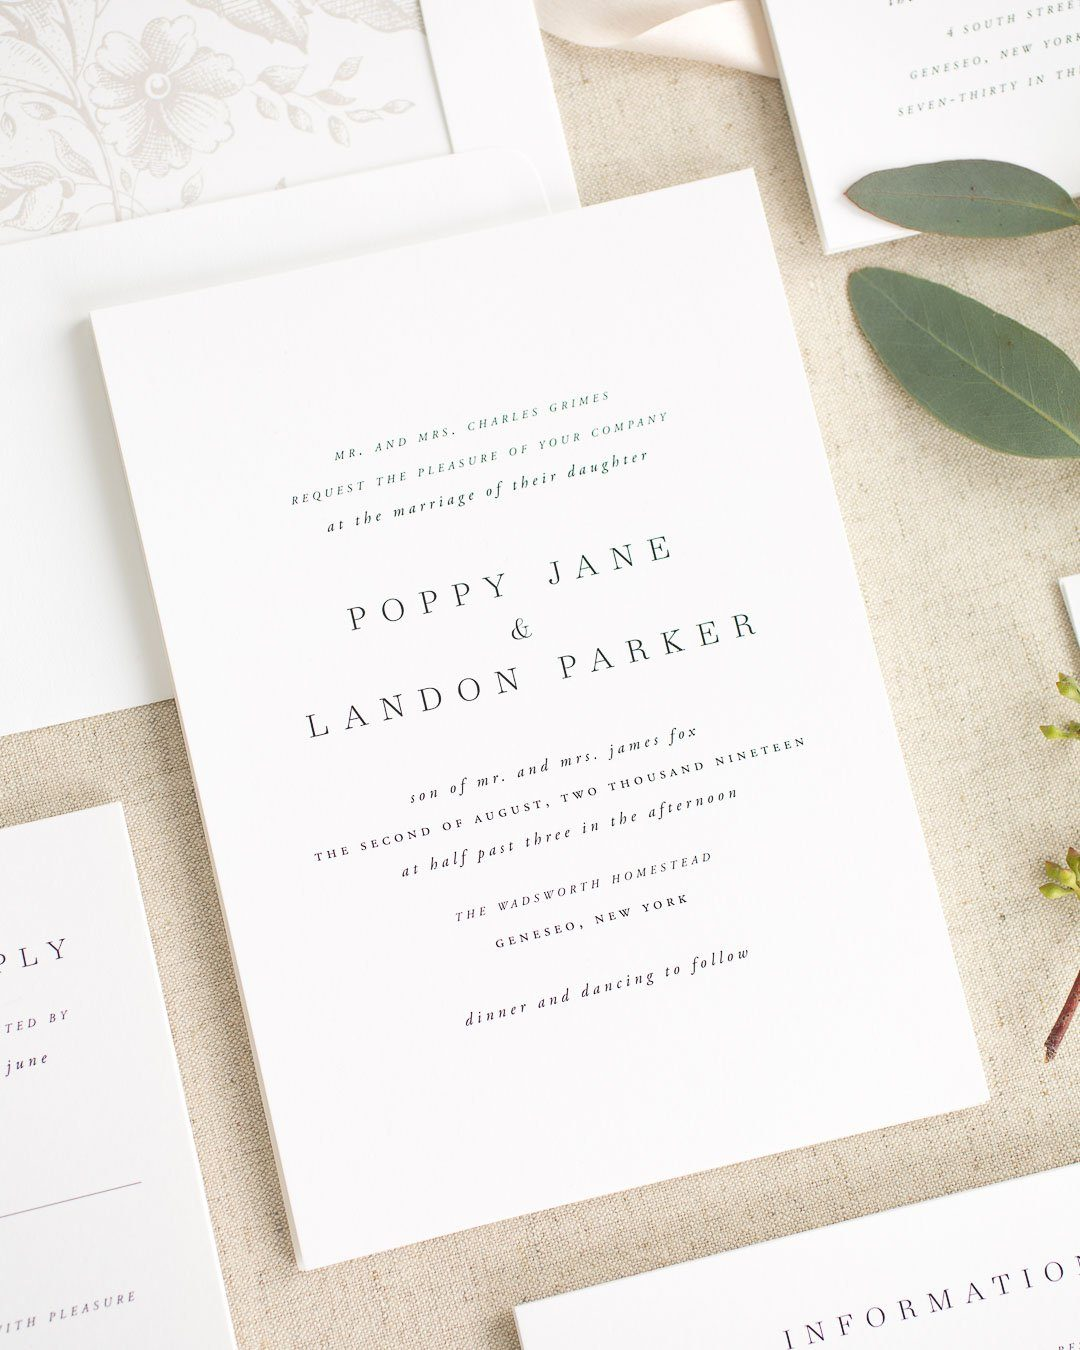 Classic Wedding Invitations with a Floral Envelope Liner in Mocha and Greenery